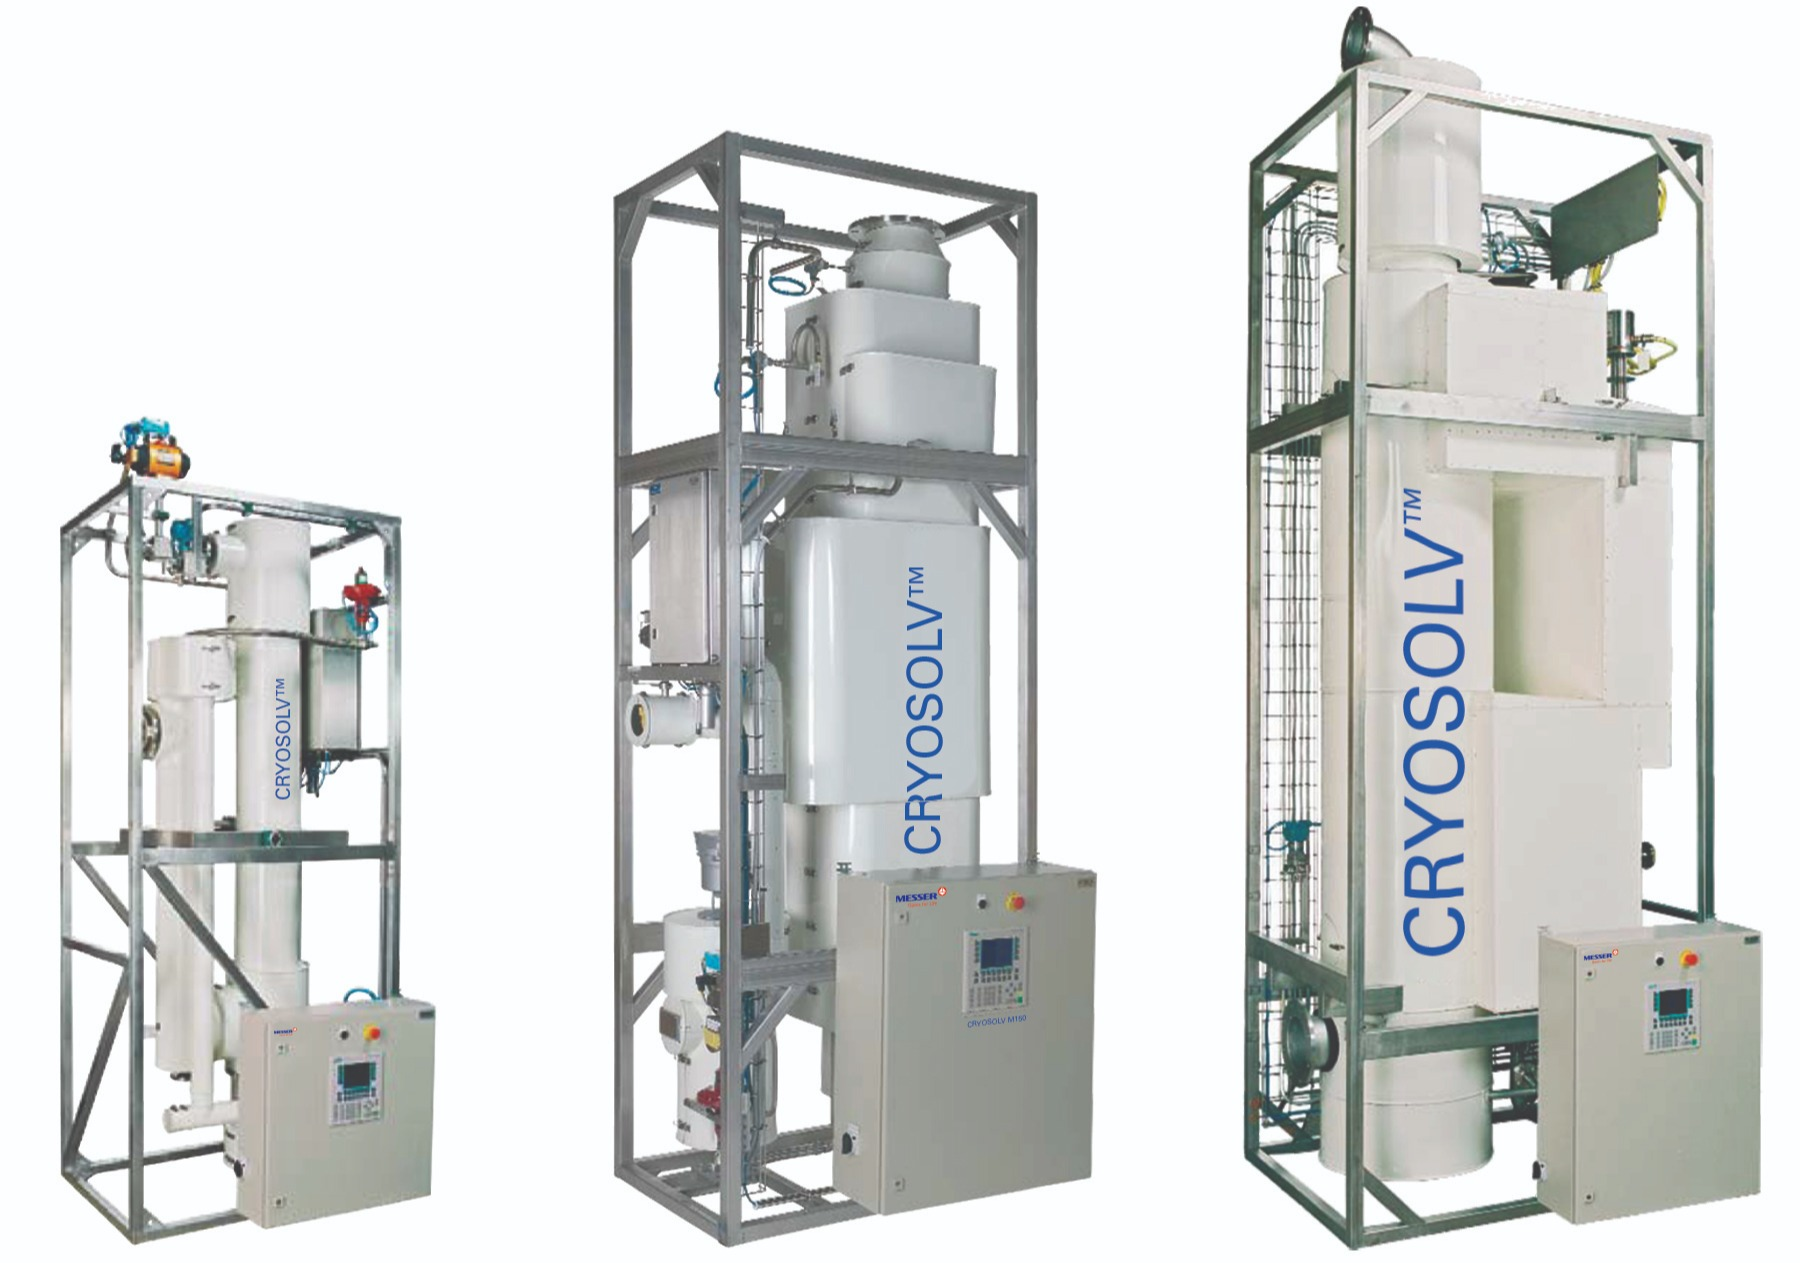 The CRYOSOLVTM  VEC system provides flexible, compact, and efficient equipment and solutions to minimize atmospheric emissions of volatile organic compounds by using cryogenic liquid nitrogen.